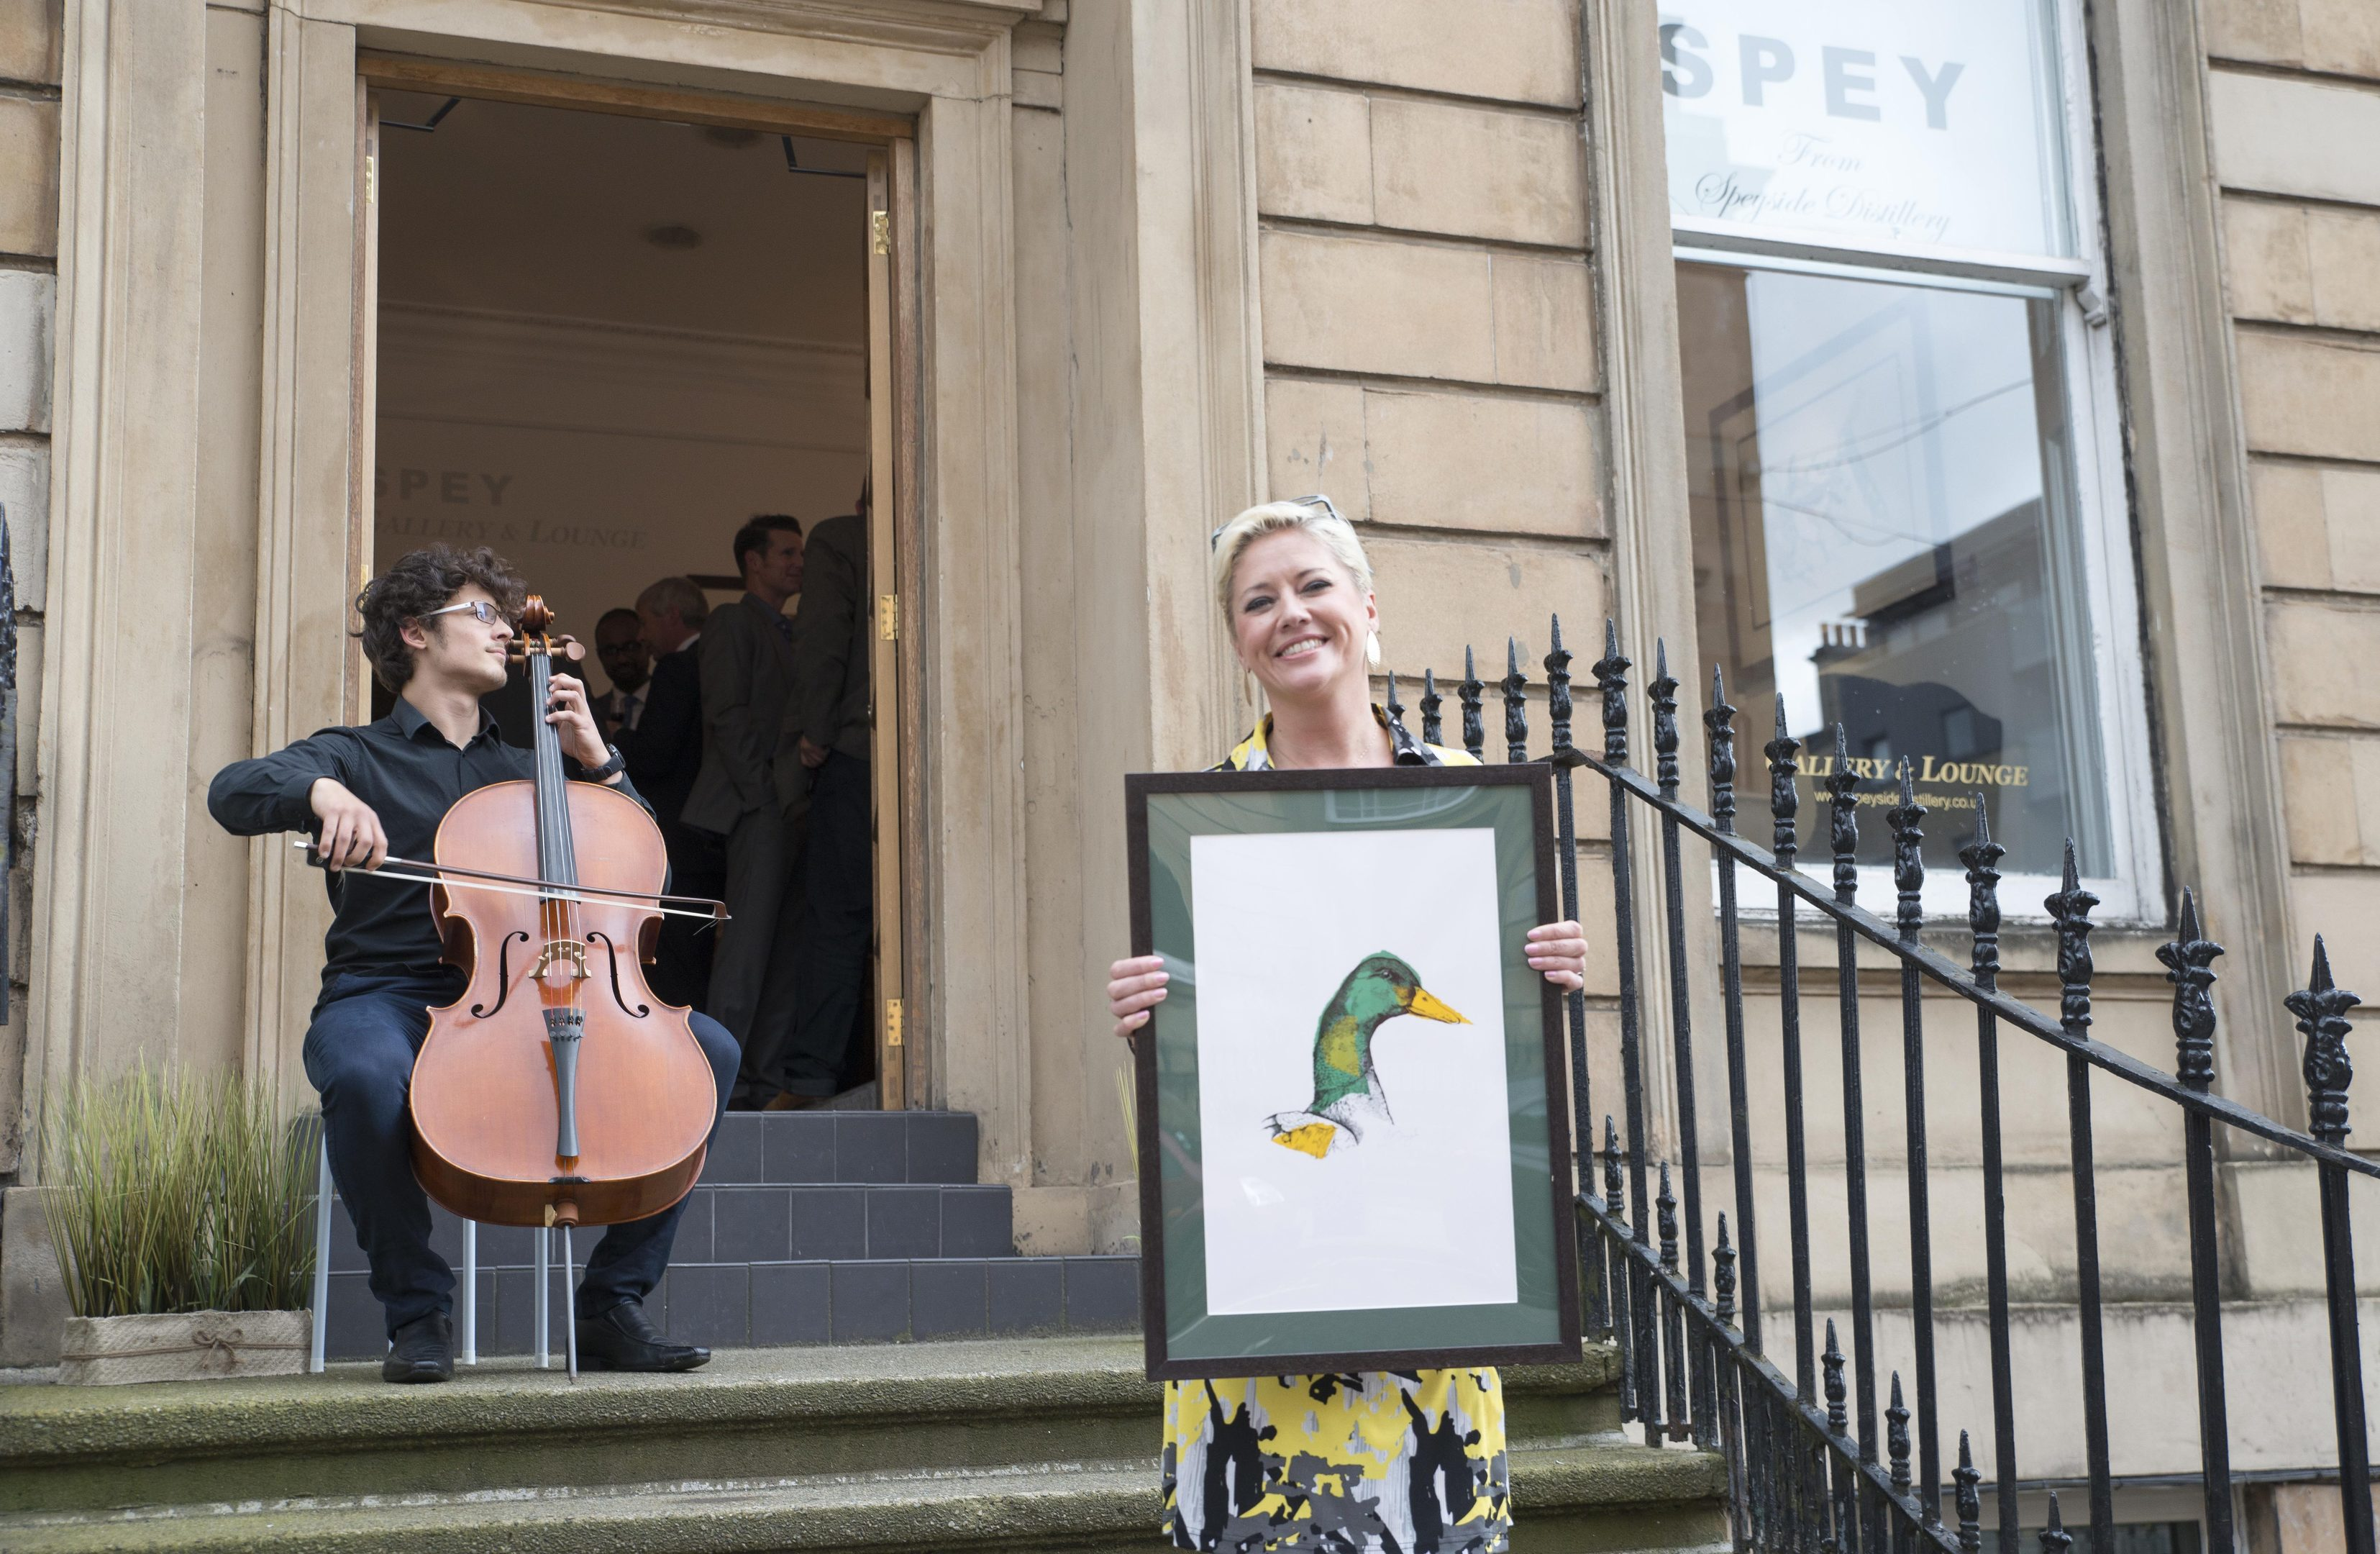 Joanna McDonough, Artist in Residence at Speyside Distillery, in front of the new SPEY Gallery and Lounge on Bath Street, Glasgow.